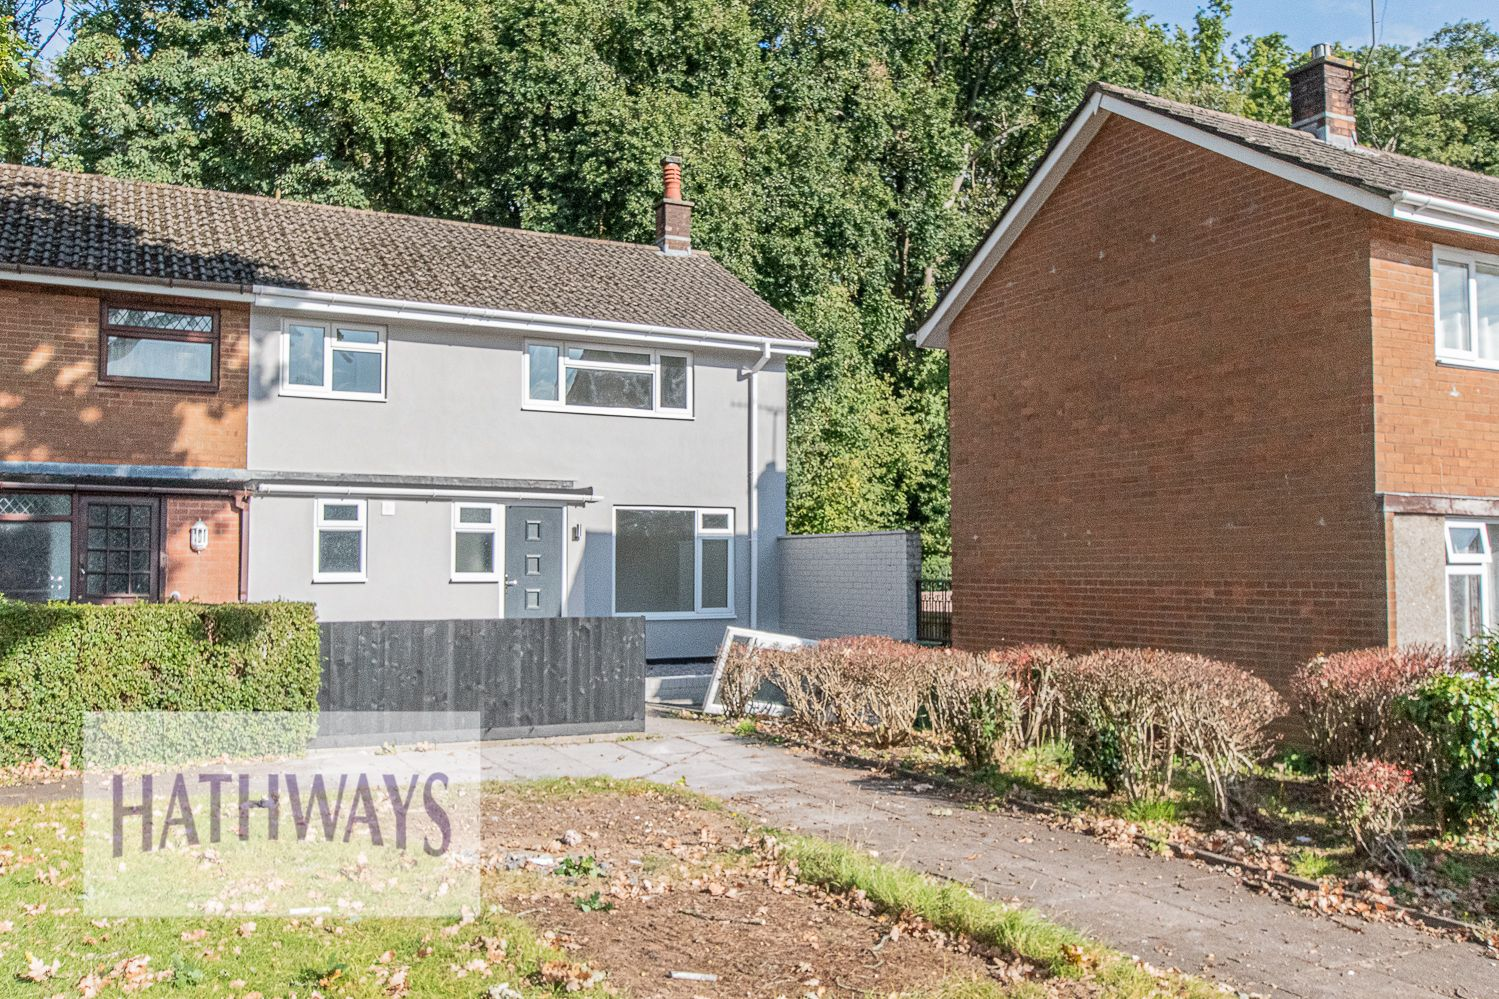 3 bed house for sale in Beaumaris Drive  - Property Image 1